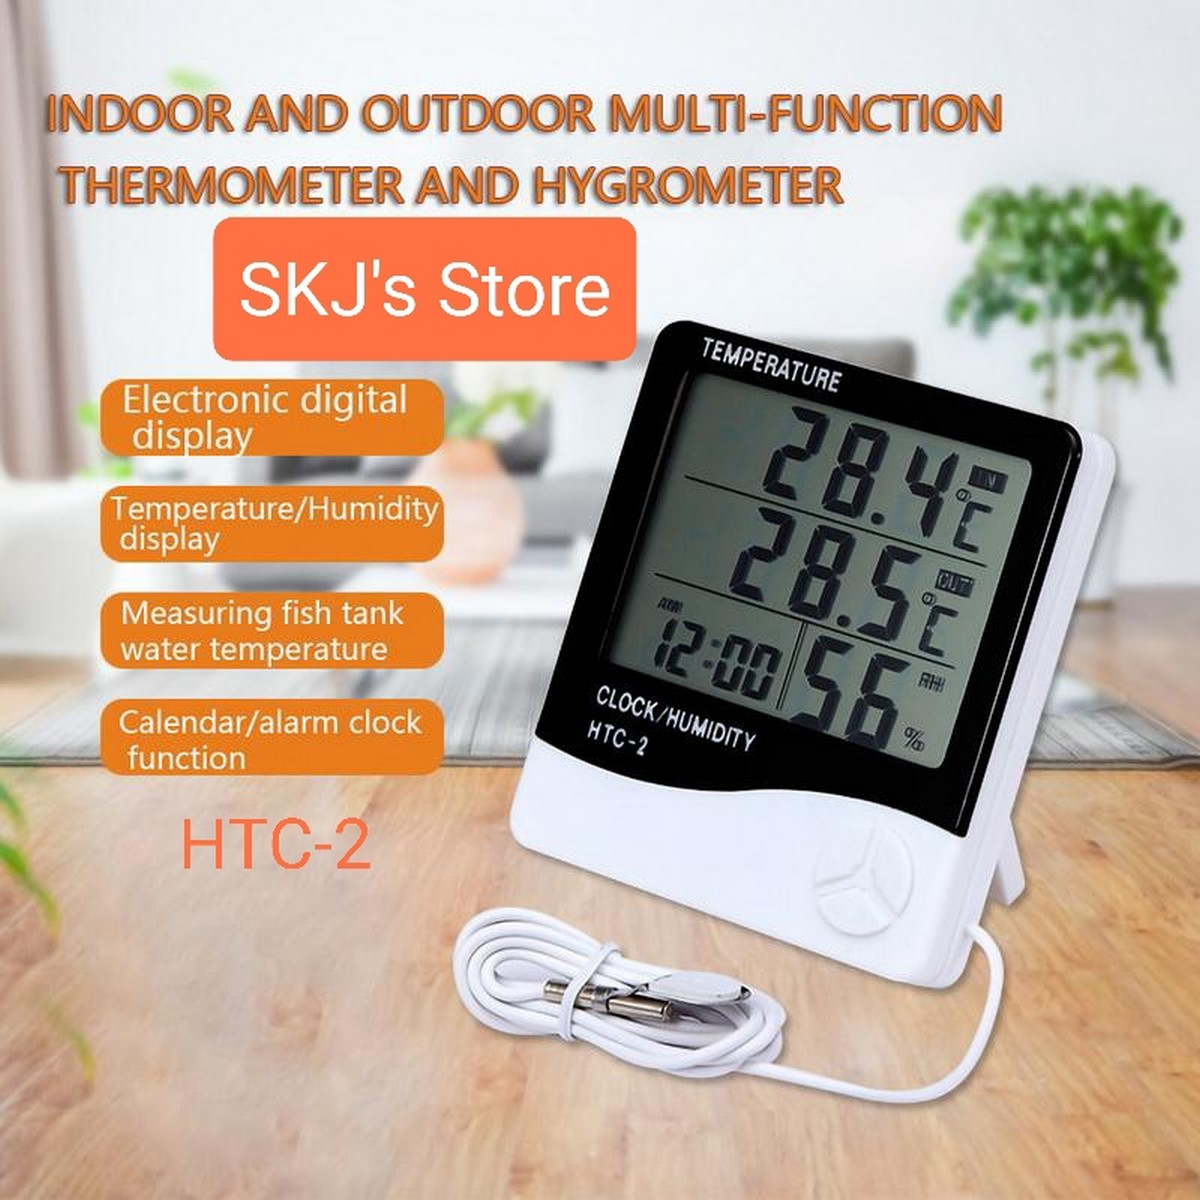 SKJ Digital Thermometer and Hygrometer with wire for outside tempreture, Clock, Alarm, Calender with Big Digits - HTC 2 Tempreture Meter and Humidity Meter for indoor and outdoor tempreture guage with probe